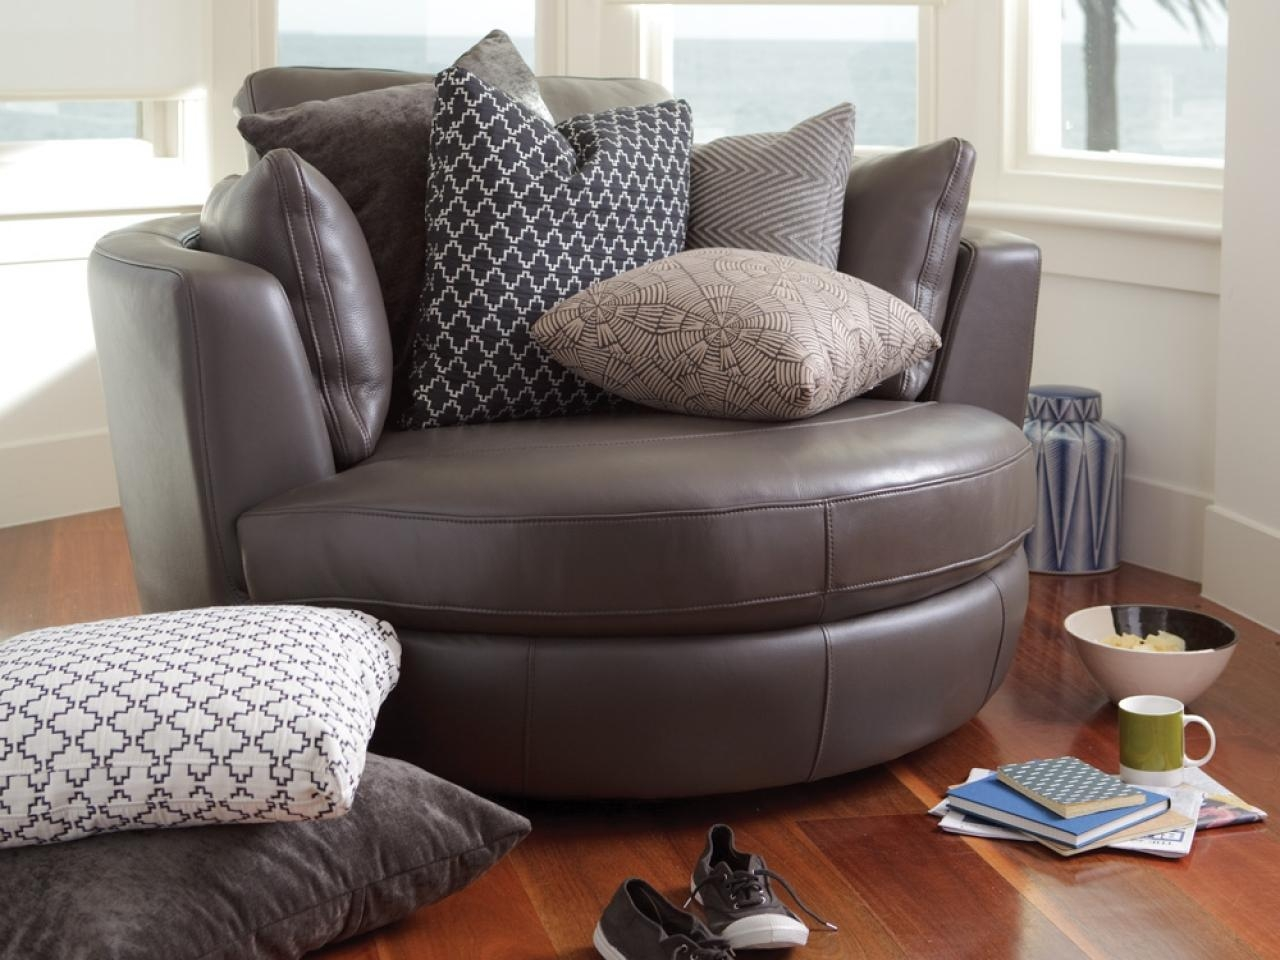 black leather sofas on gumtree balkarp sofa bed hack 20 top cuddler swivel chairs | ideas